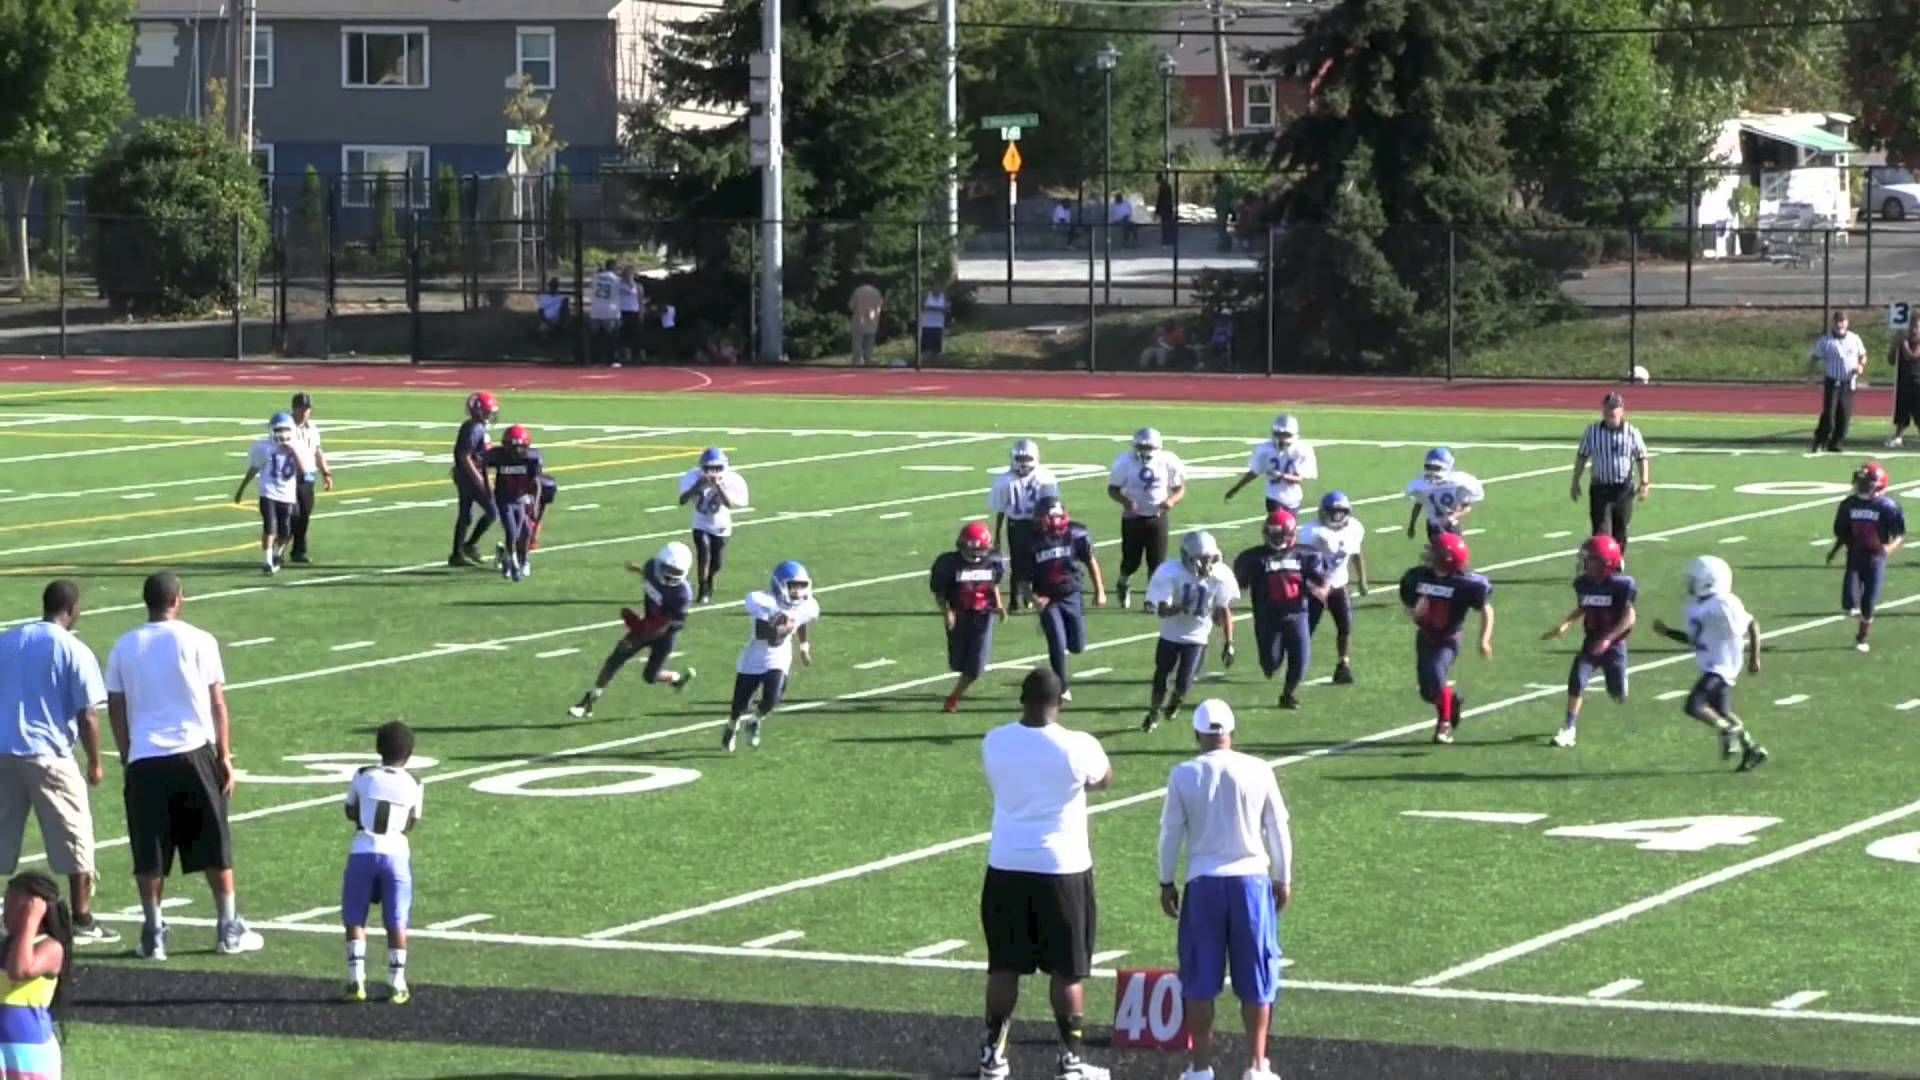 Puget Sound Lancers 48 vs Seattle Jr. Seahawks 6 (September 7, 2014)